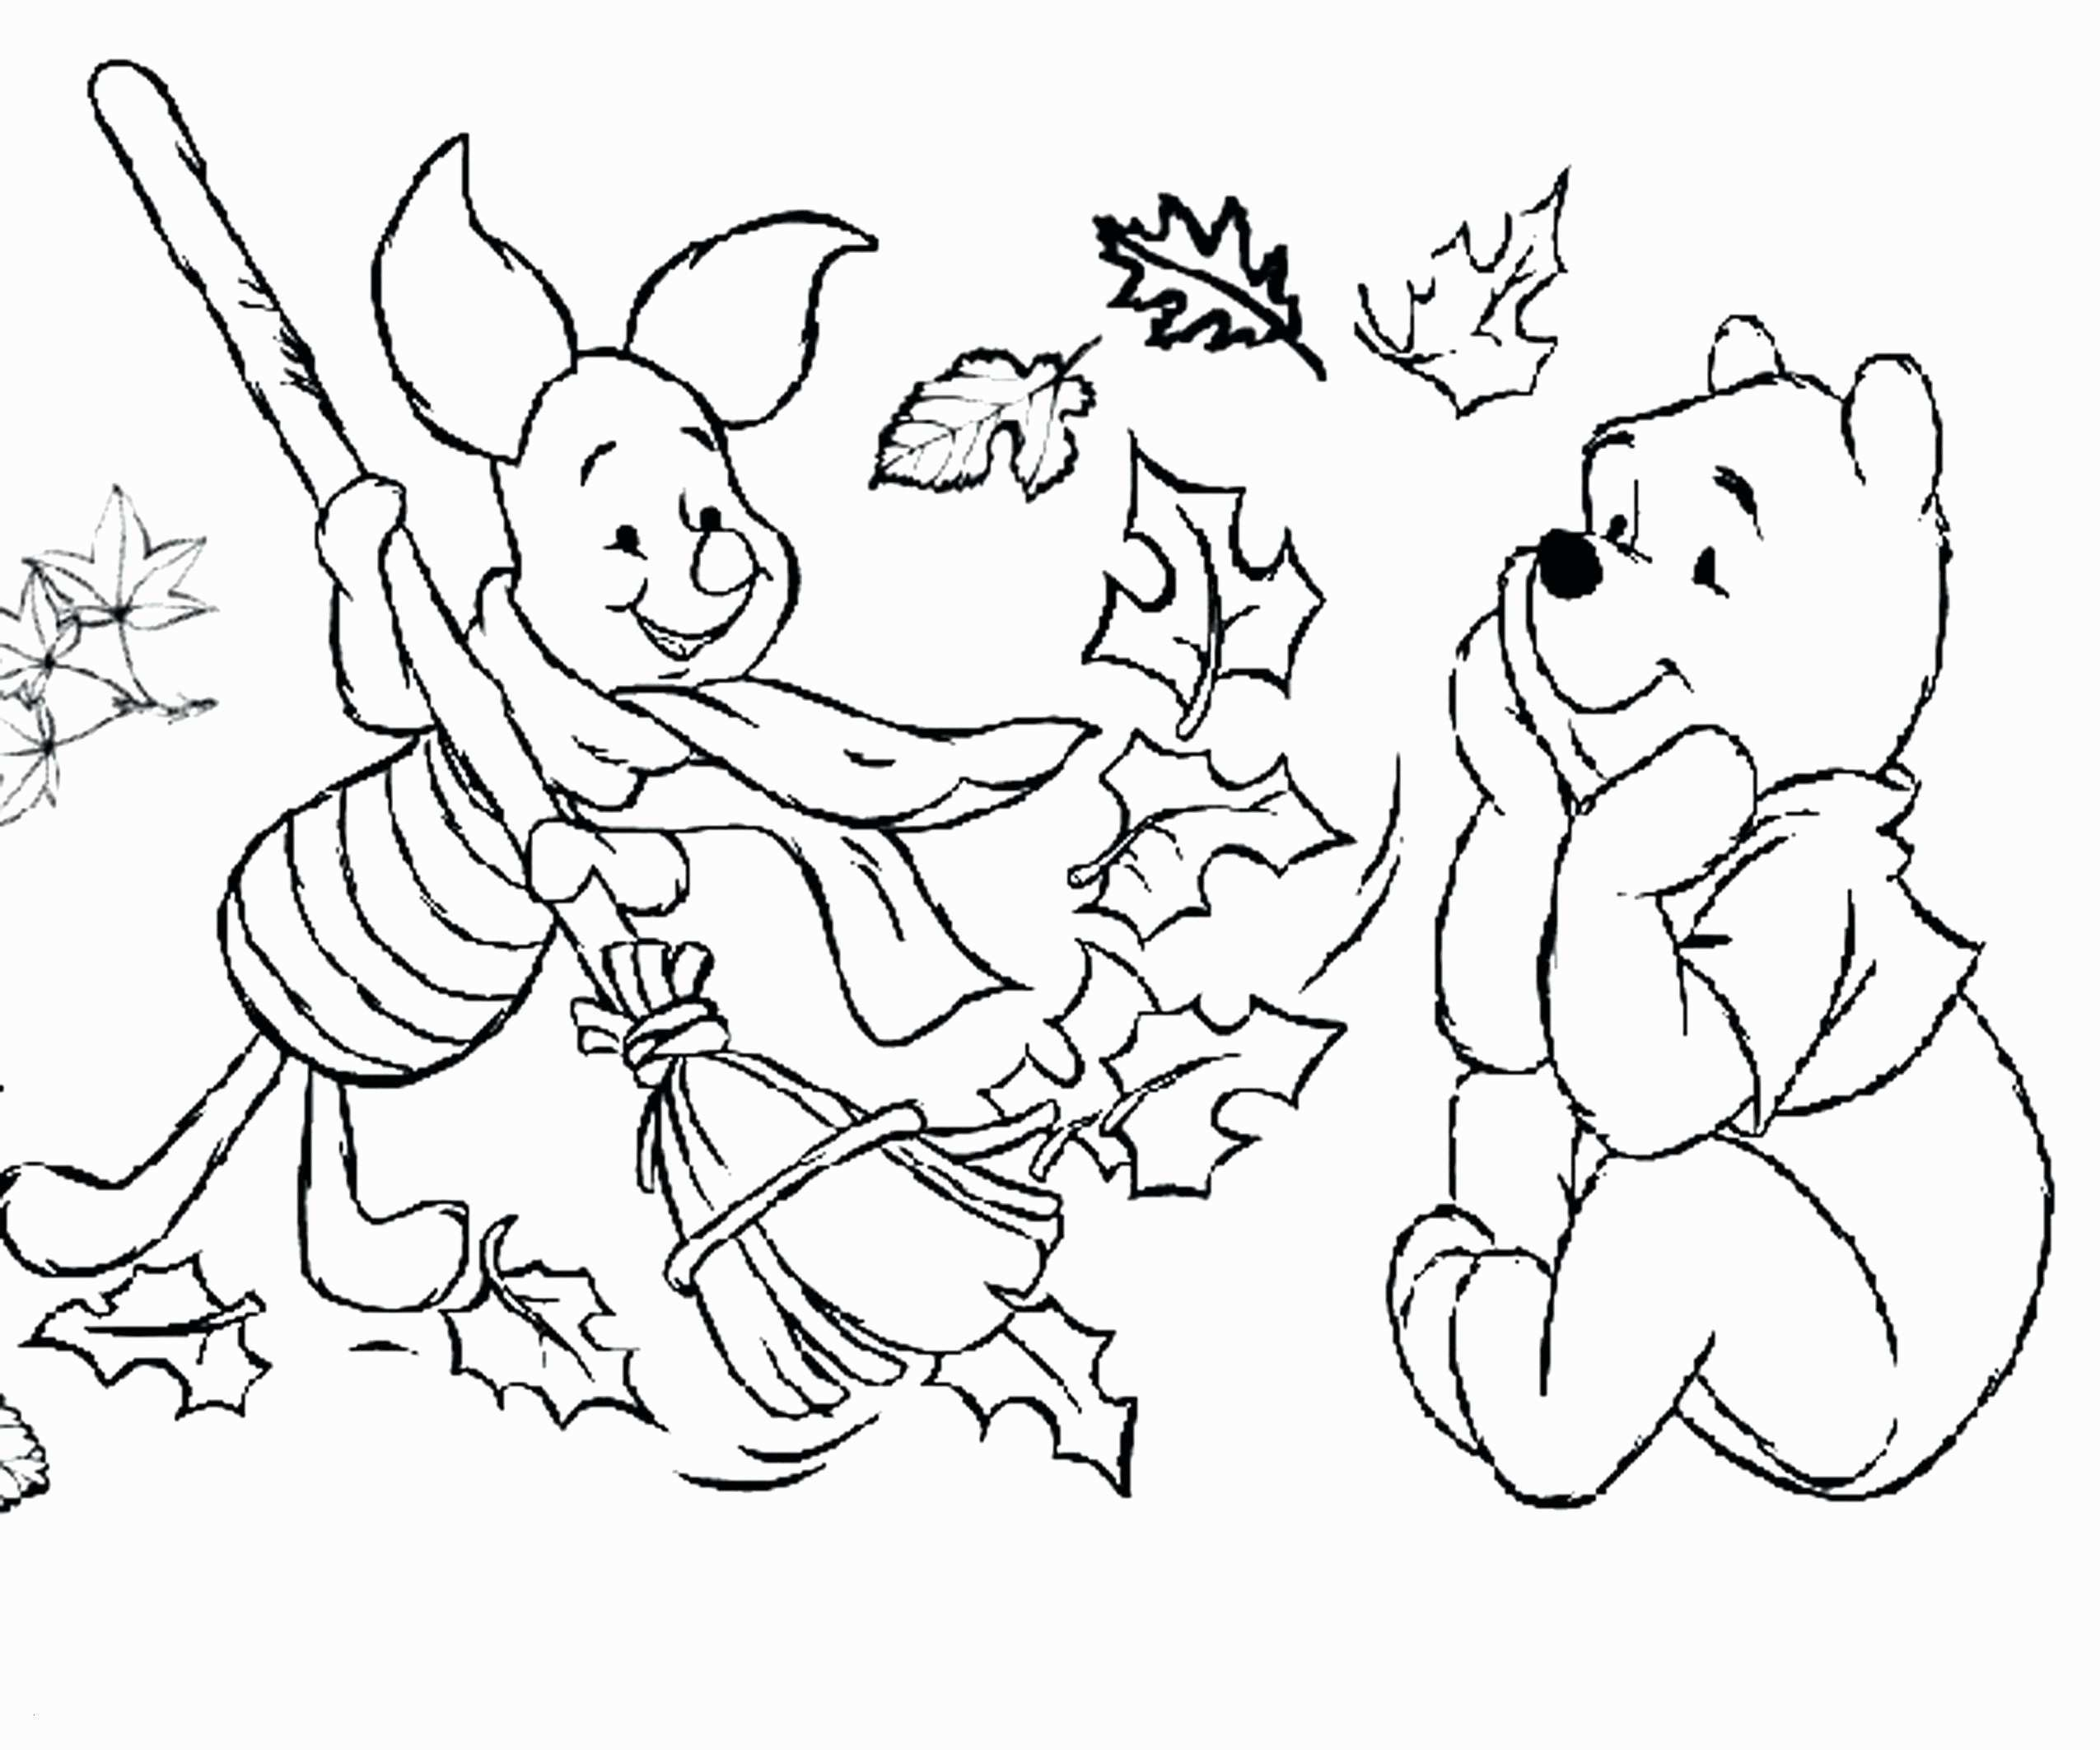 Rooster Coloring Page Year Of The Rooster Coloring Page Awesome Coloring Pages Rooster